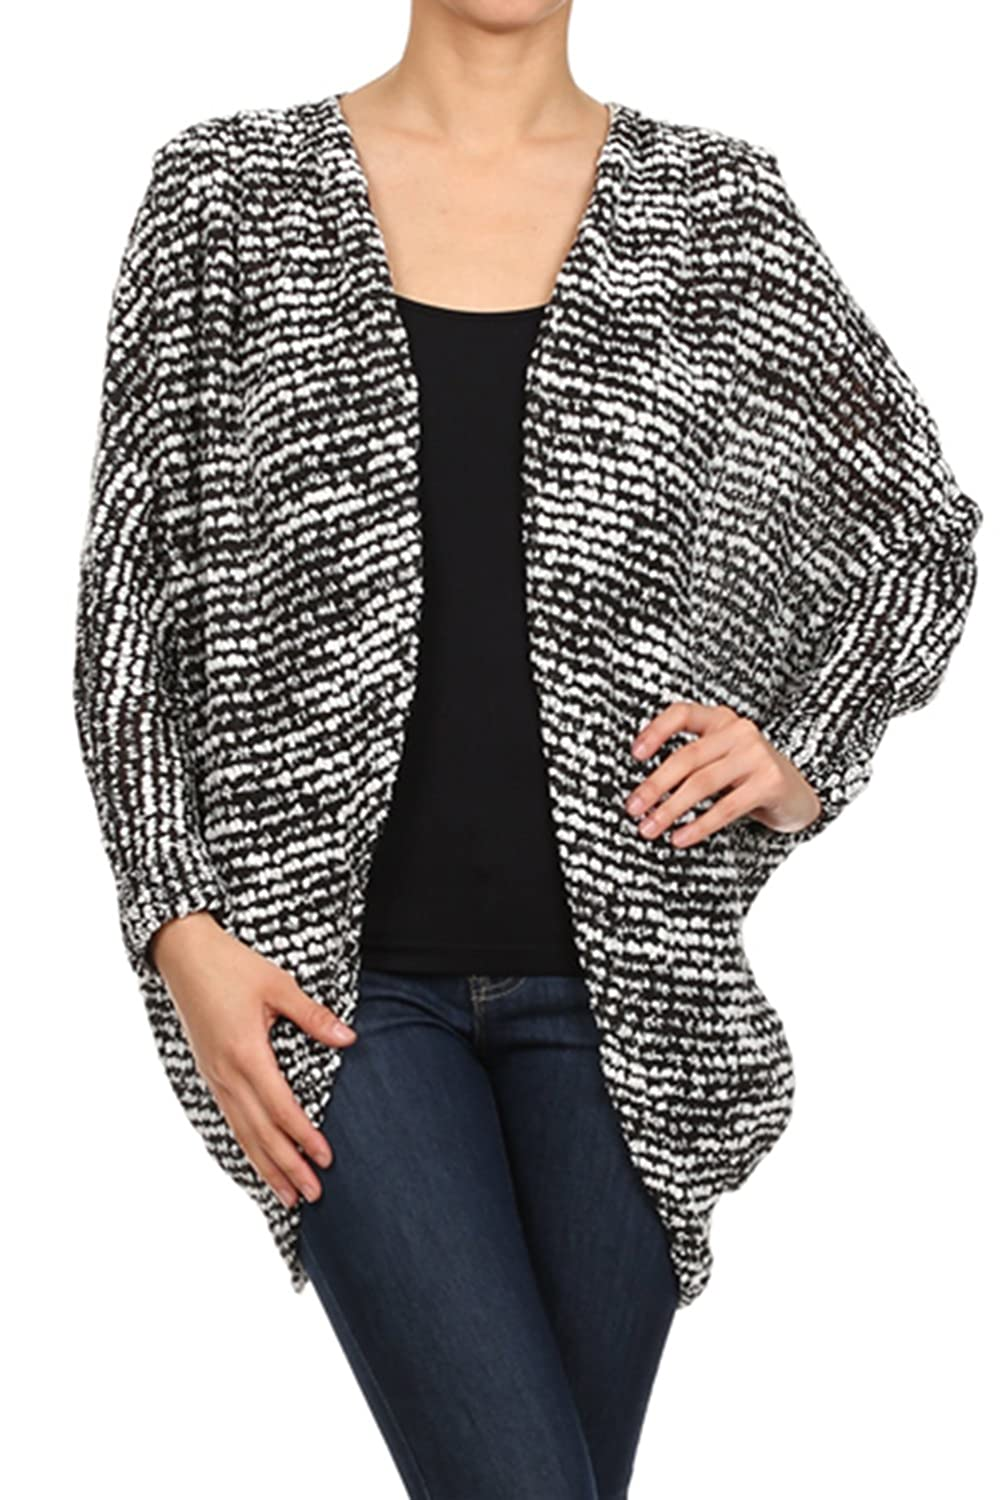 Bubble B Women's Juniors Long Sleeve Oversize Open Cardigan Black White